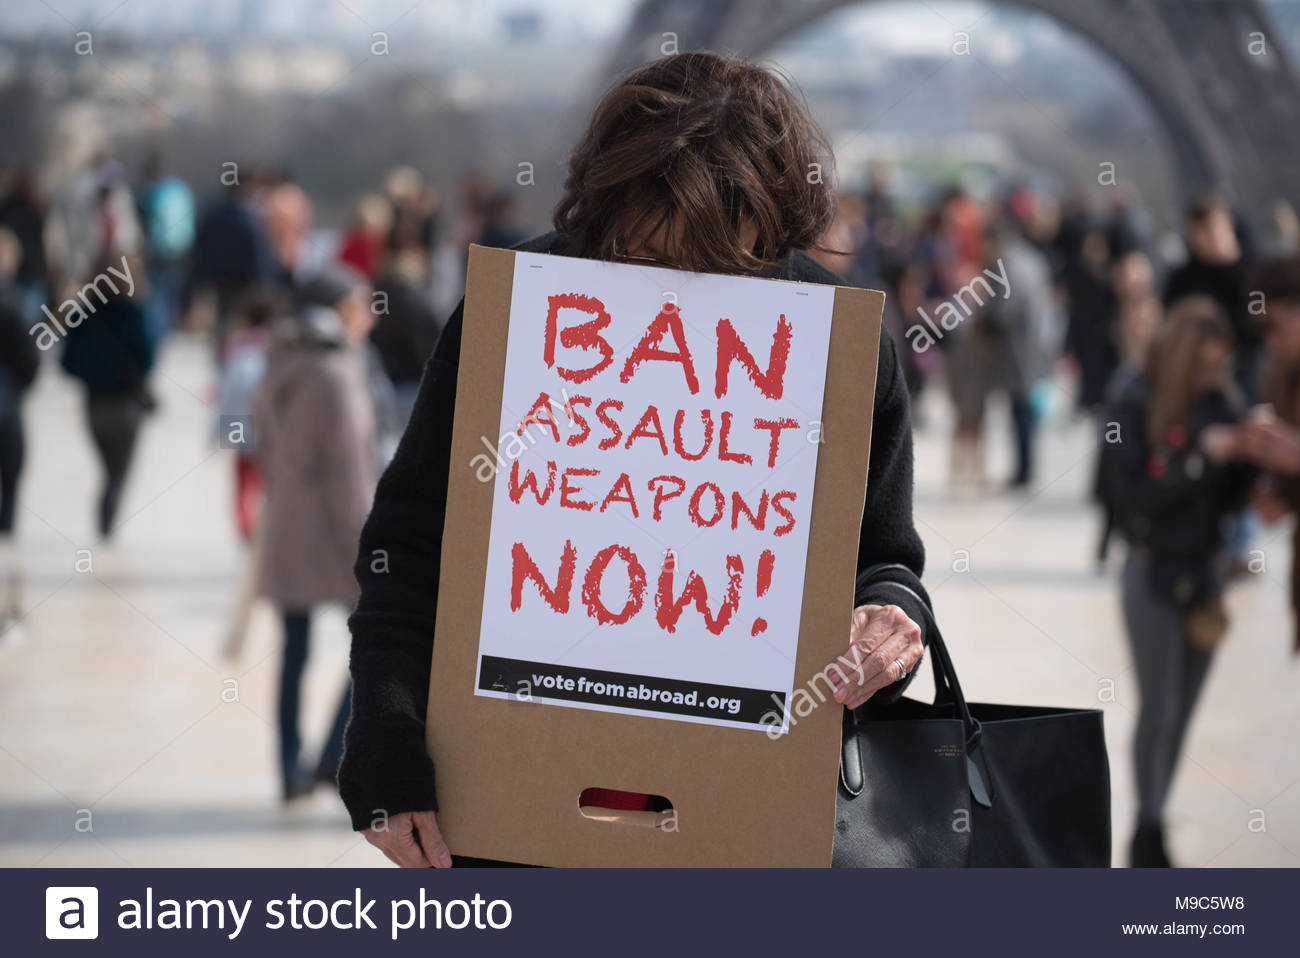 high school massacres and weapons control in the united states Last week's school shooting santa fe, which resulted in ten deaths, is only the latest in a series of school shootings over the last several years, and only three months after the infamous.